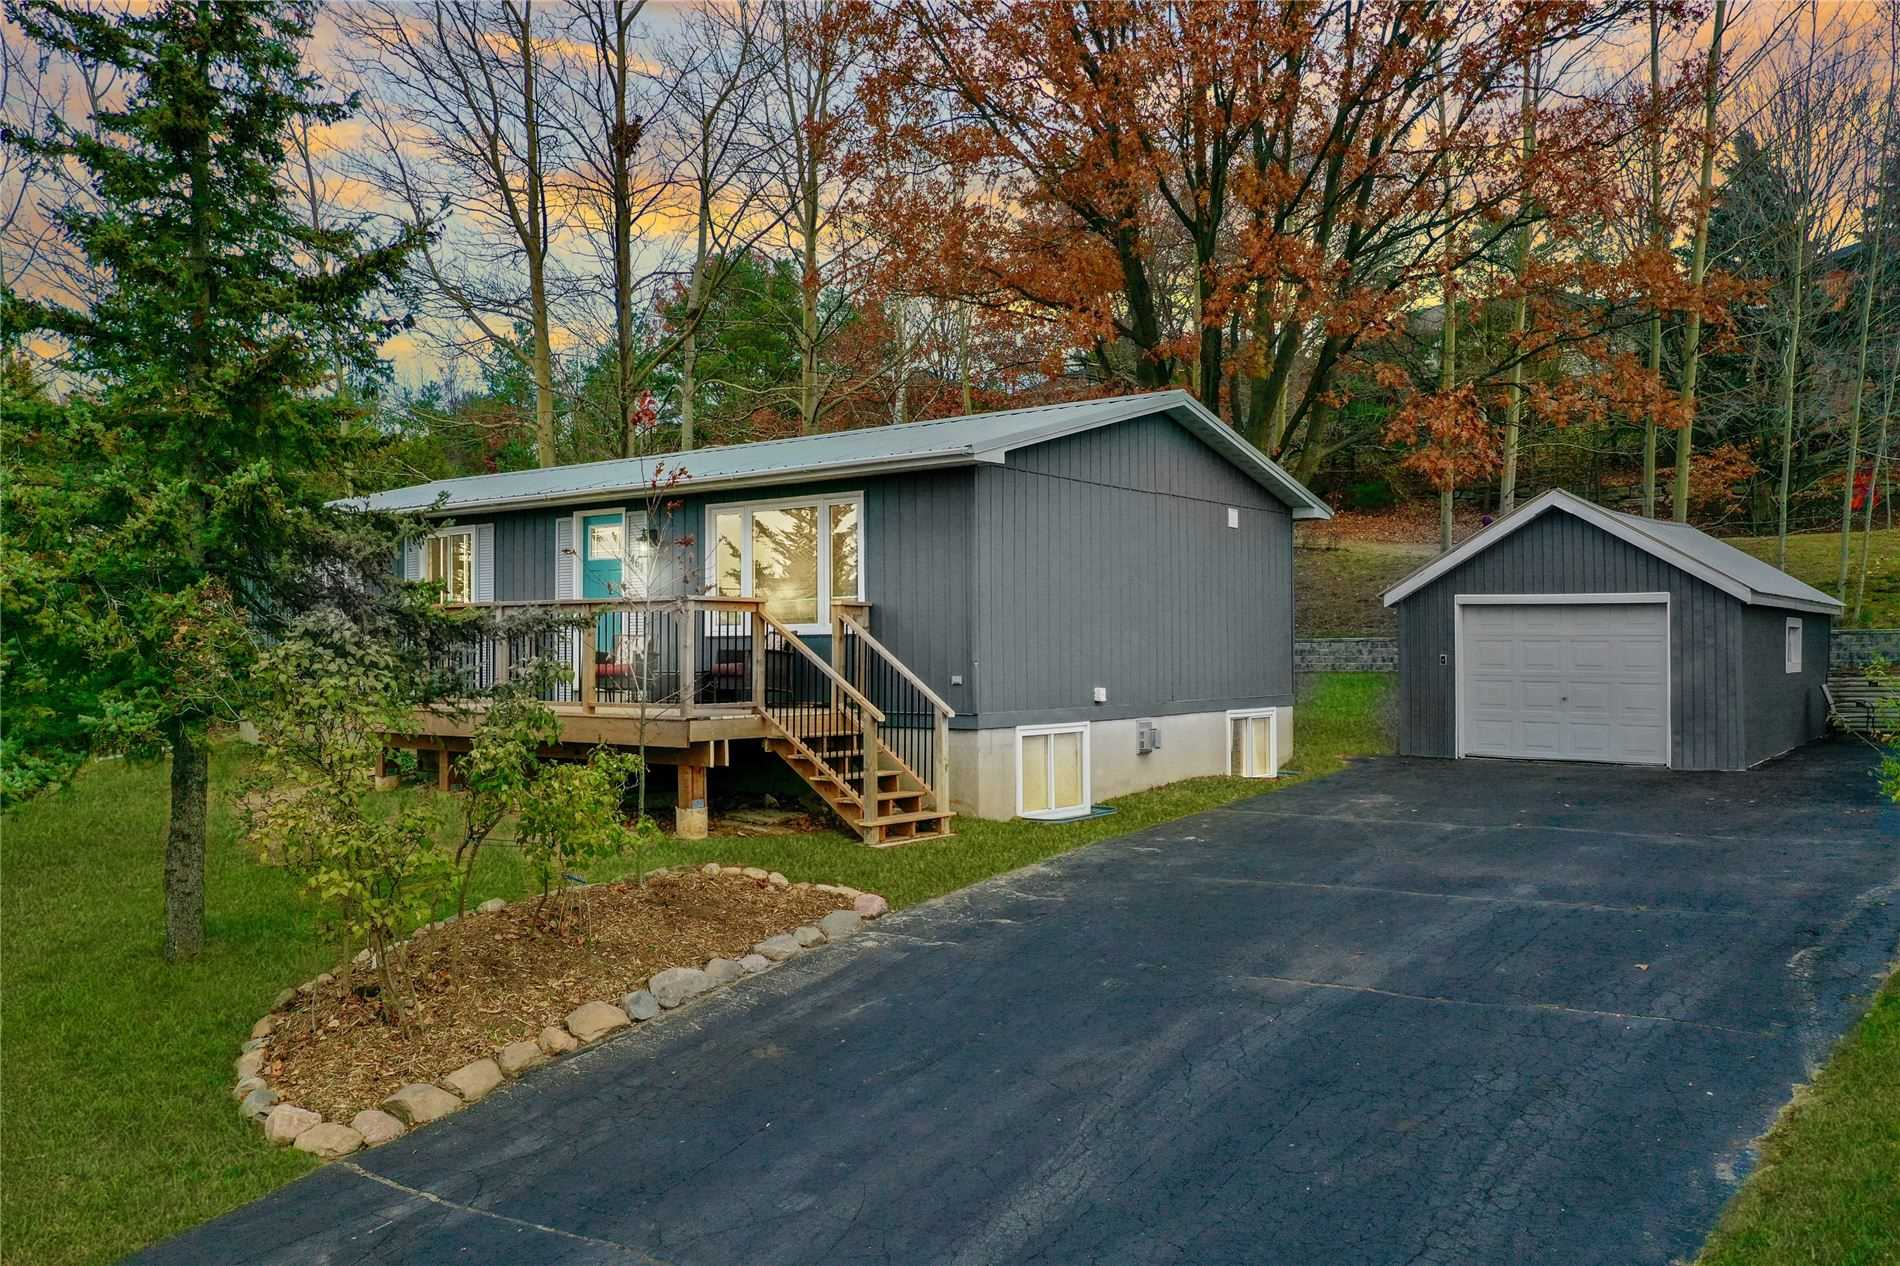 For Sale: 461 Murray Road, Penetanguishene, ON | 2 Bed, 2 Bath House for $499900.00. See 35 photos!